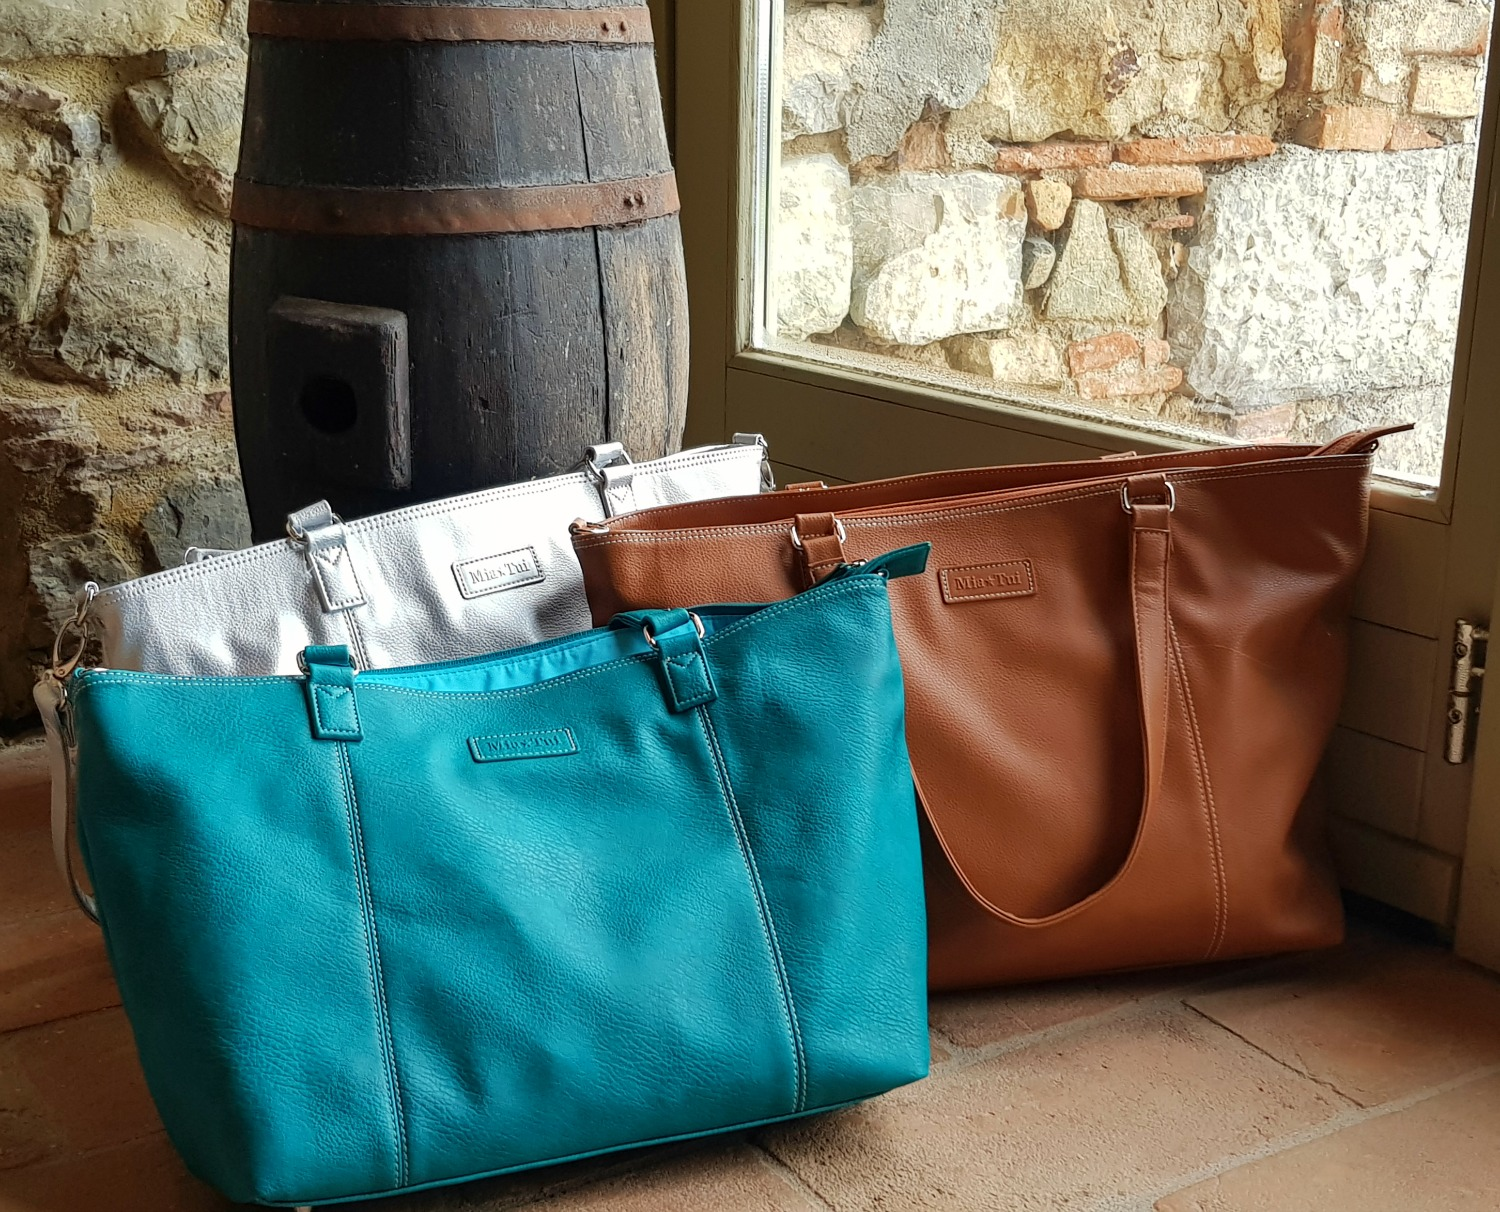 Green Mini Jen bag with matching silver and tan versions in a villa in Tuscany - my Mia Tui hand luggage review